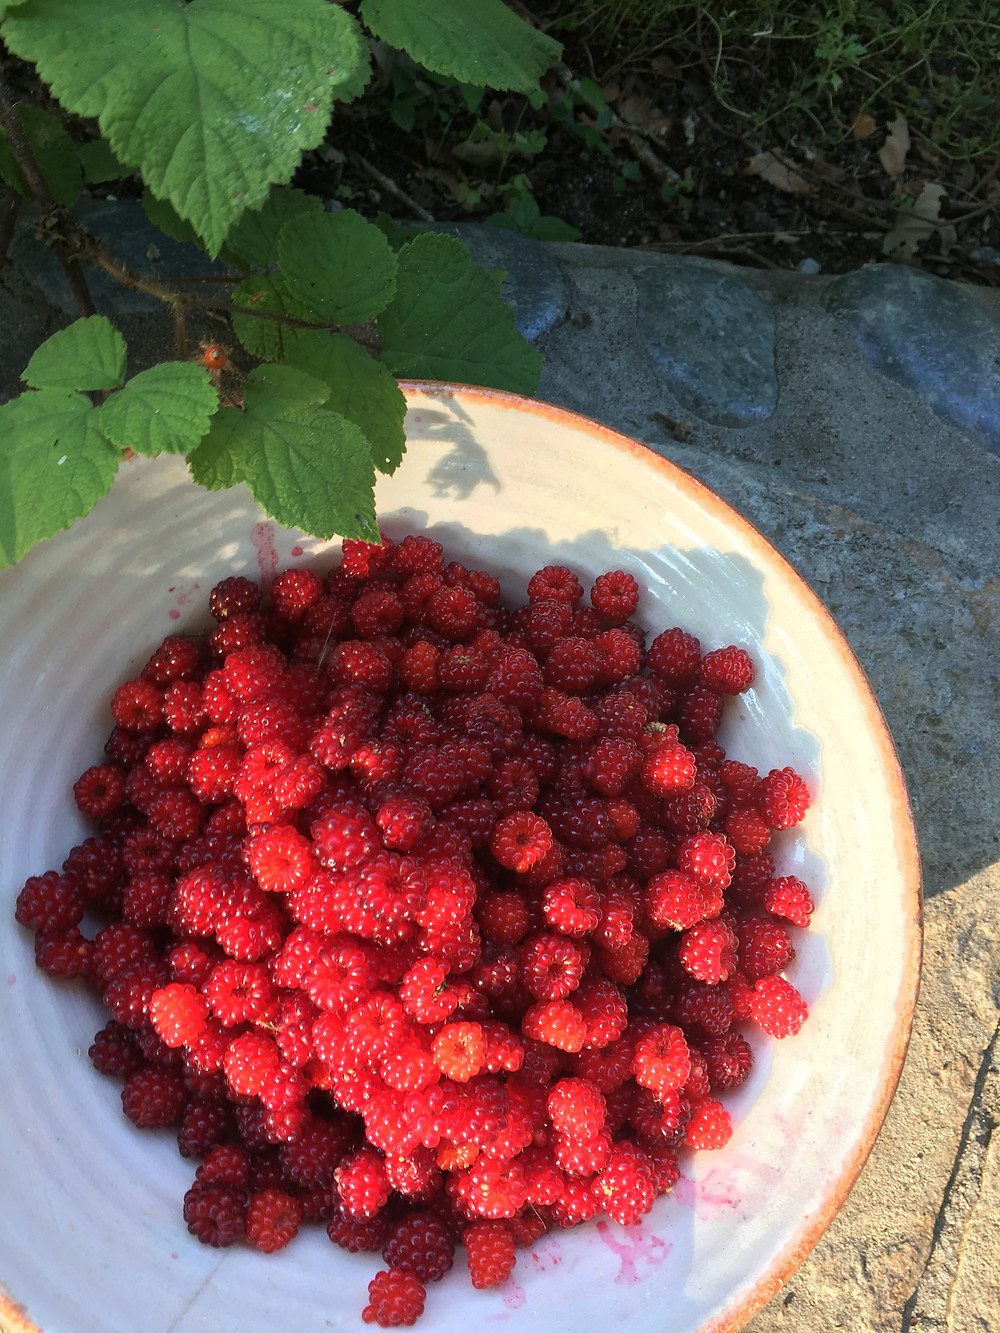 Raspberries in the sun